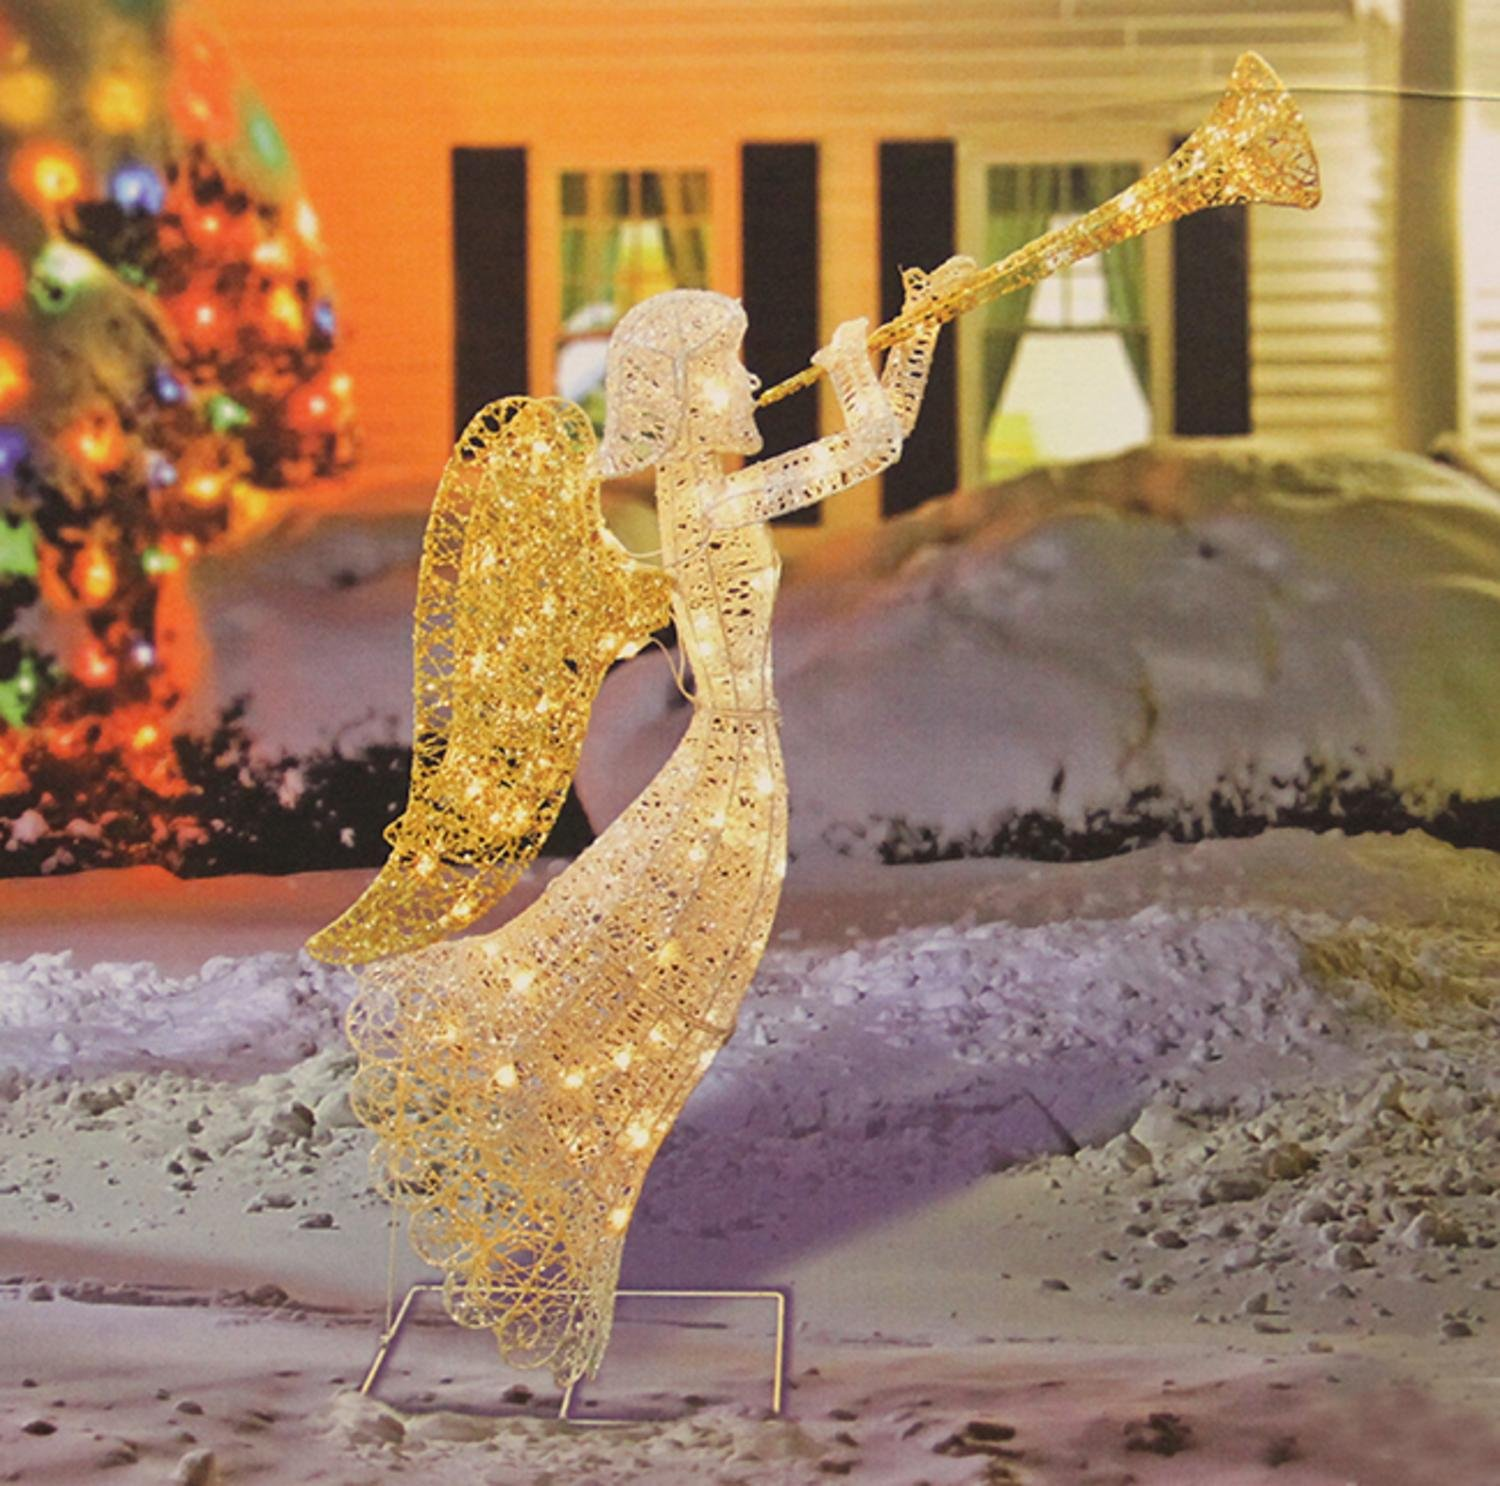 amazoncom penn 58 397w 066 48 glittered trumpeting angel lighted christmas yard art decoration home kitchen - Lighted Angel Outdoor Christmas Decorations